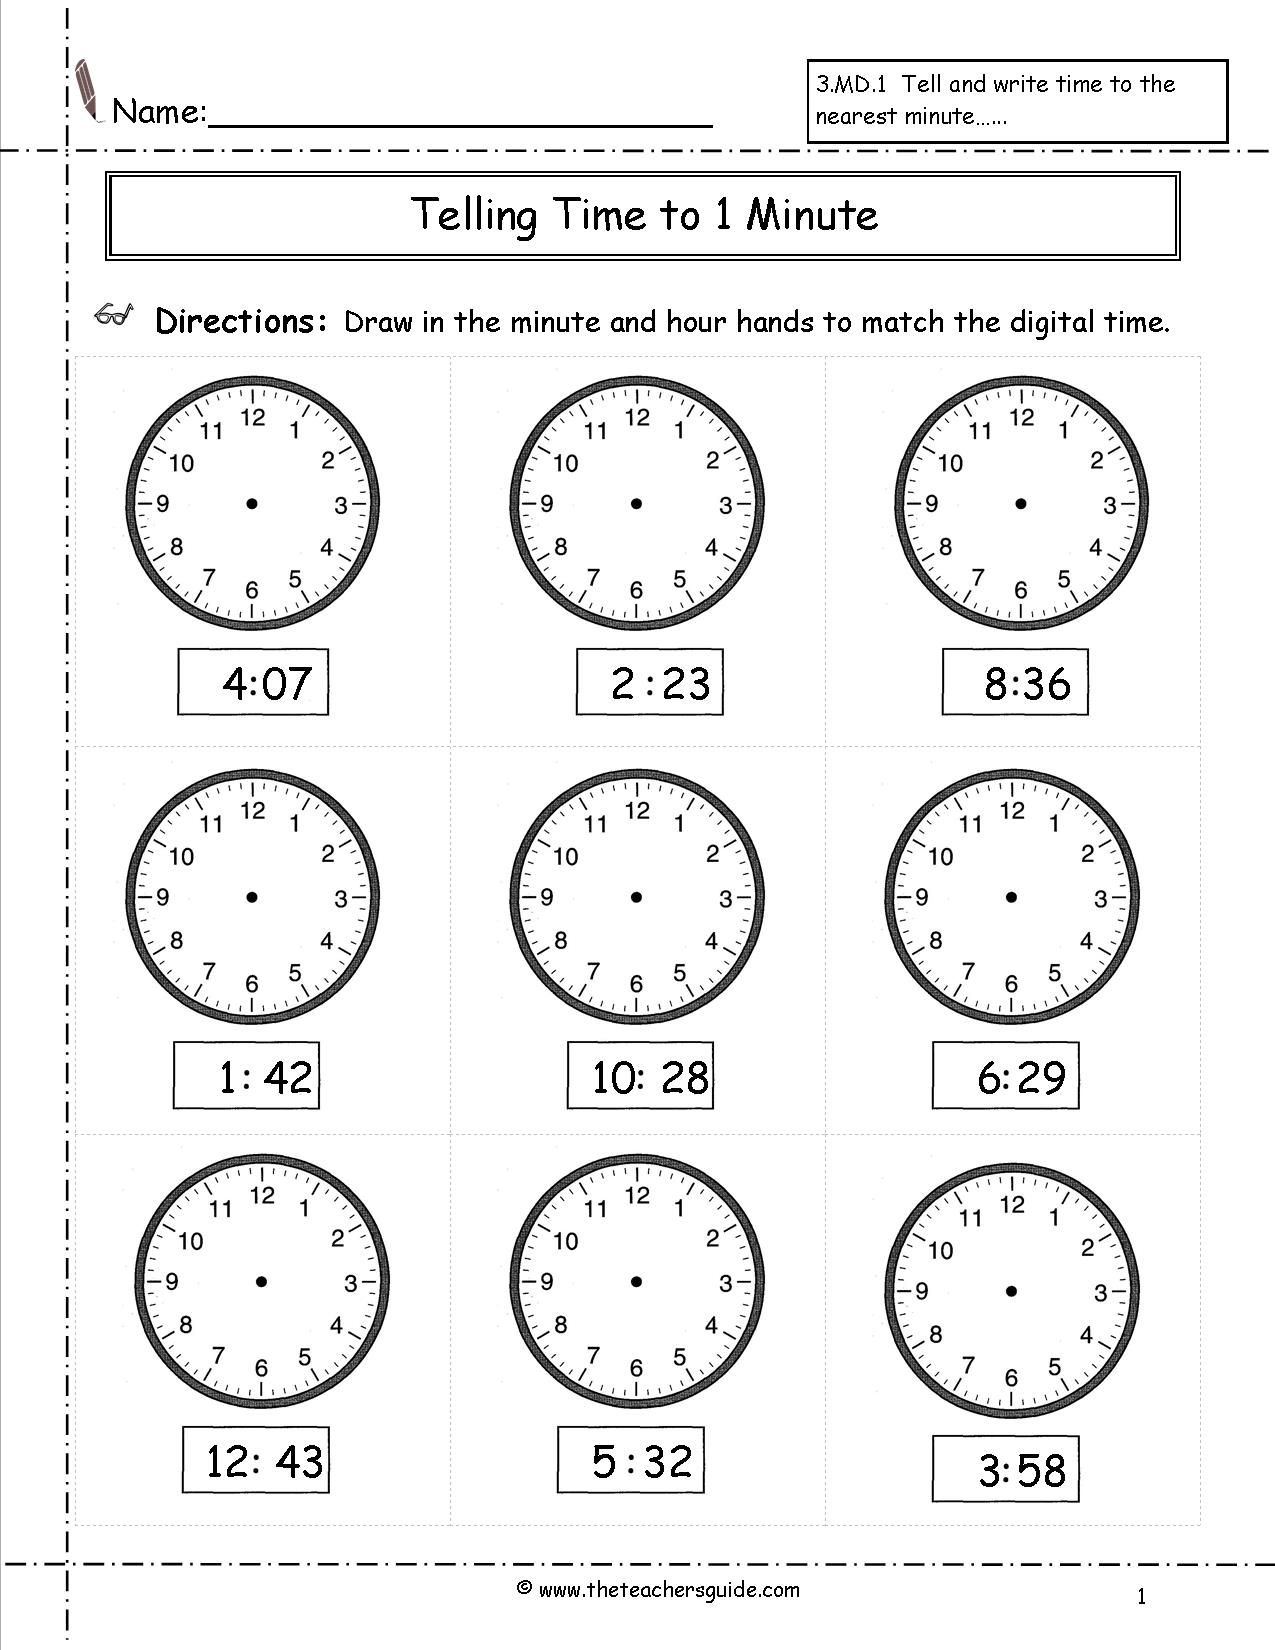 Worksheets How To Tell Time Worksheets telling time worksheets from the teachers guide math ideas guide